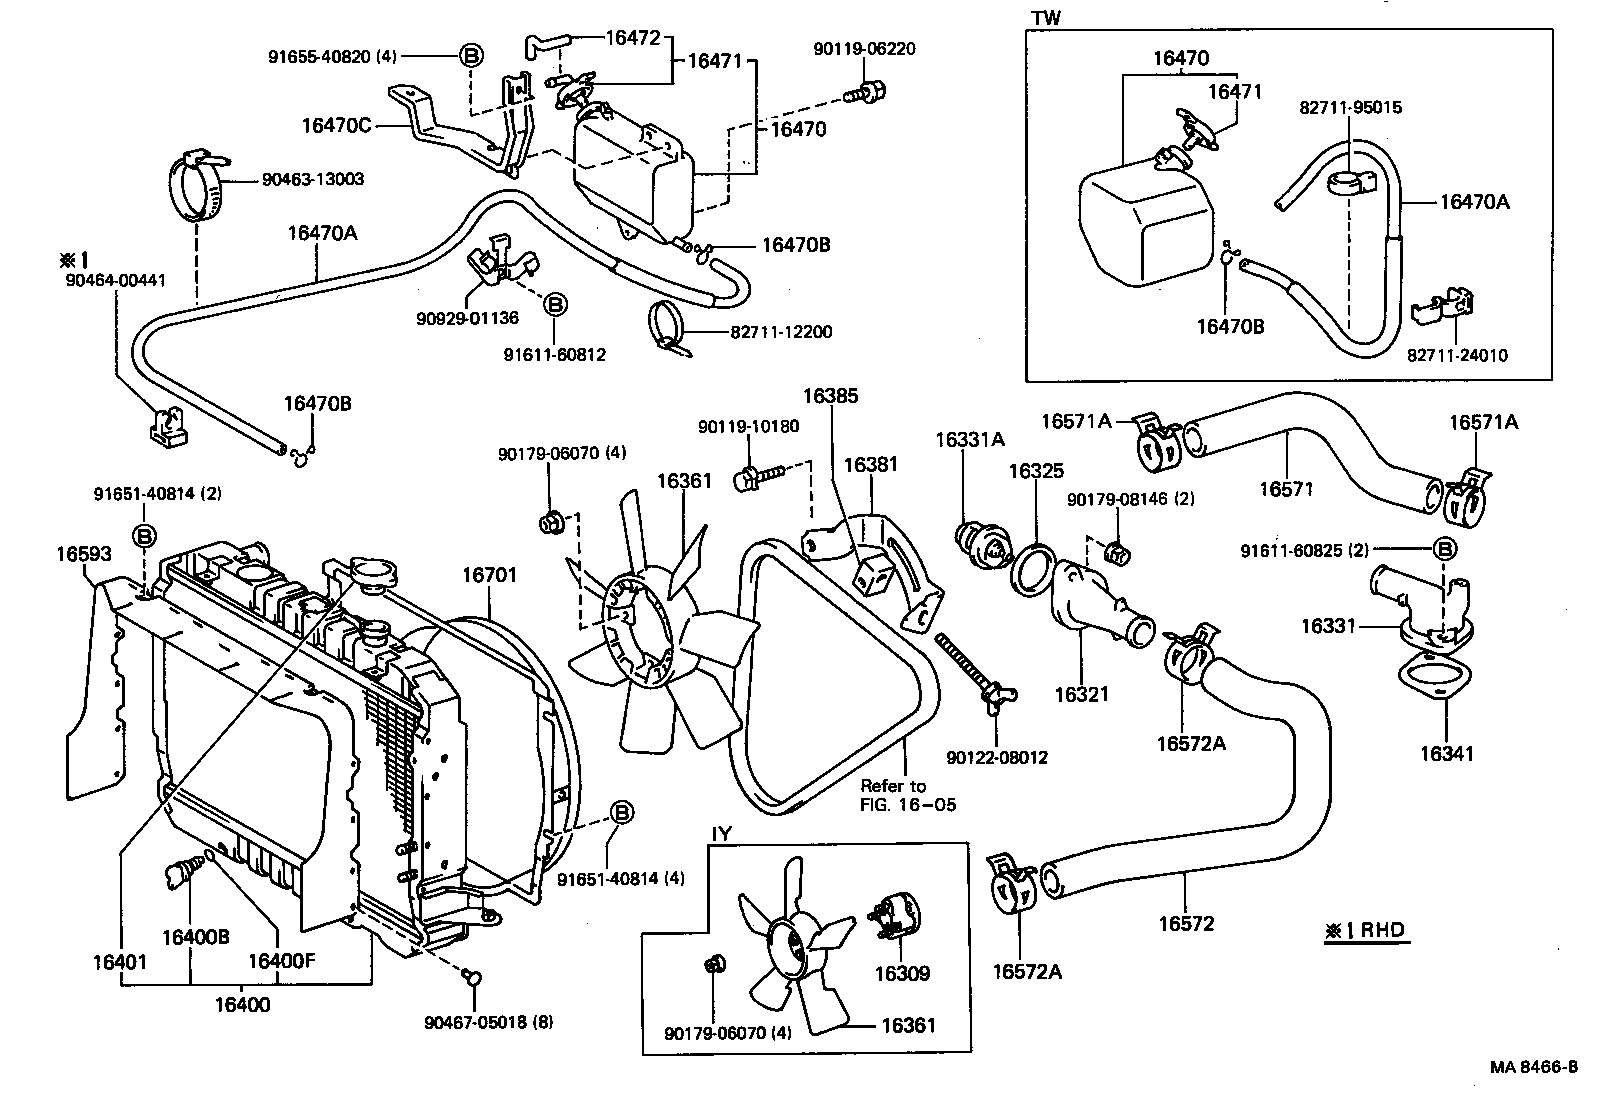 93 mr2 wiring diagram  93  get free image about wiring diagram